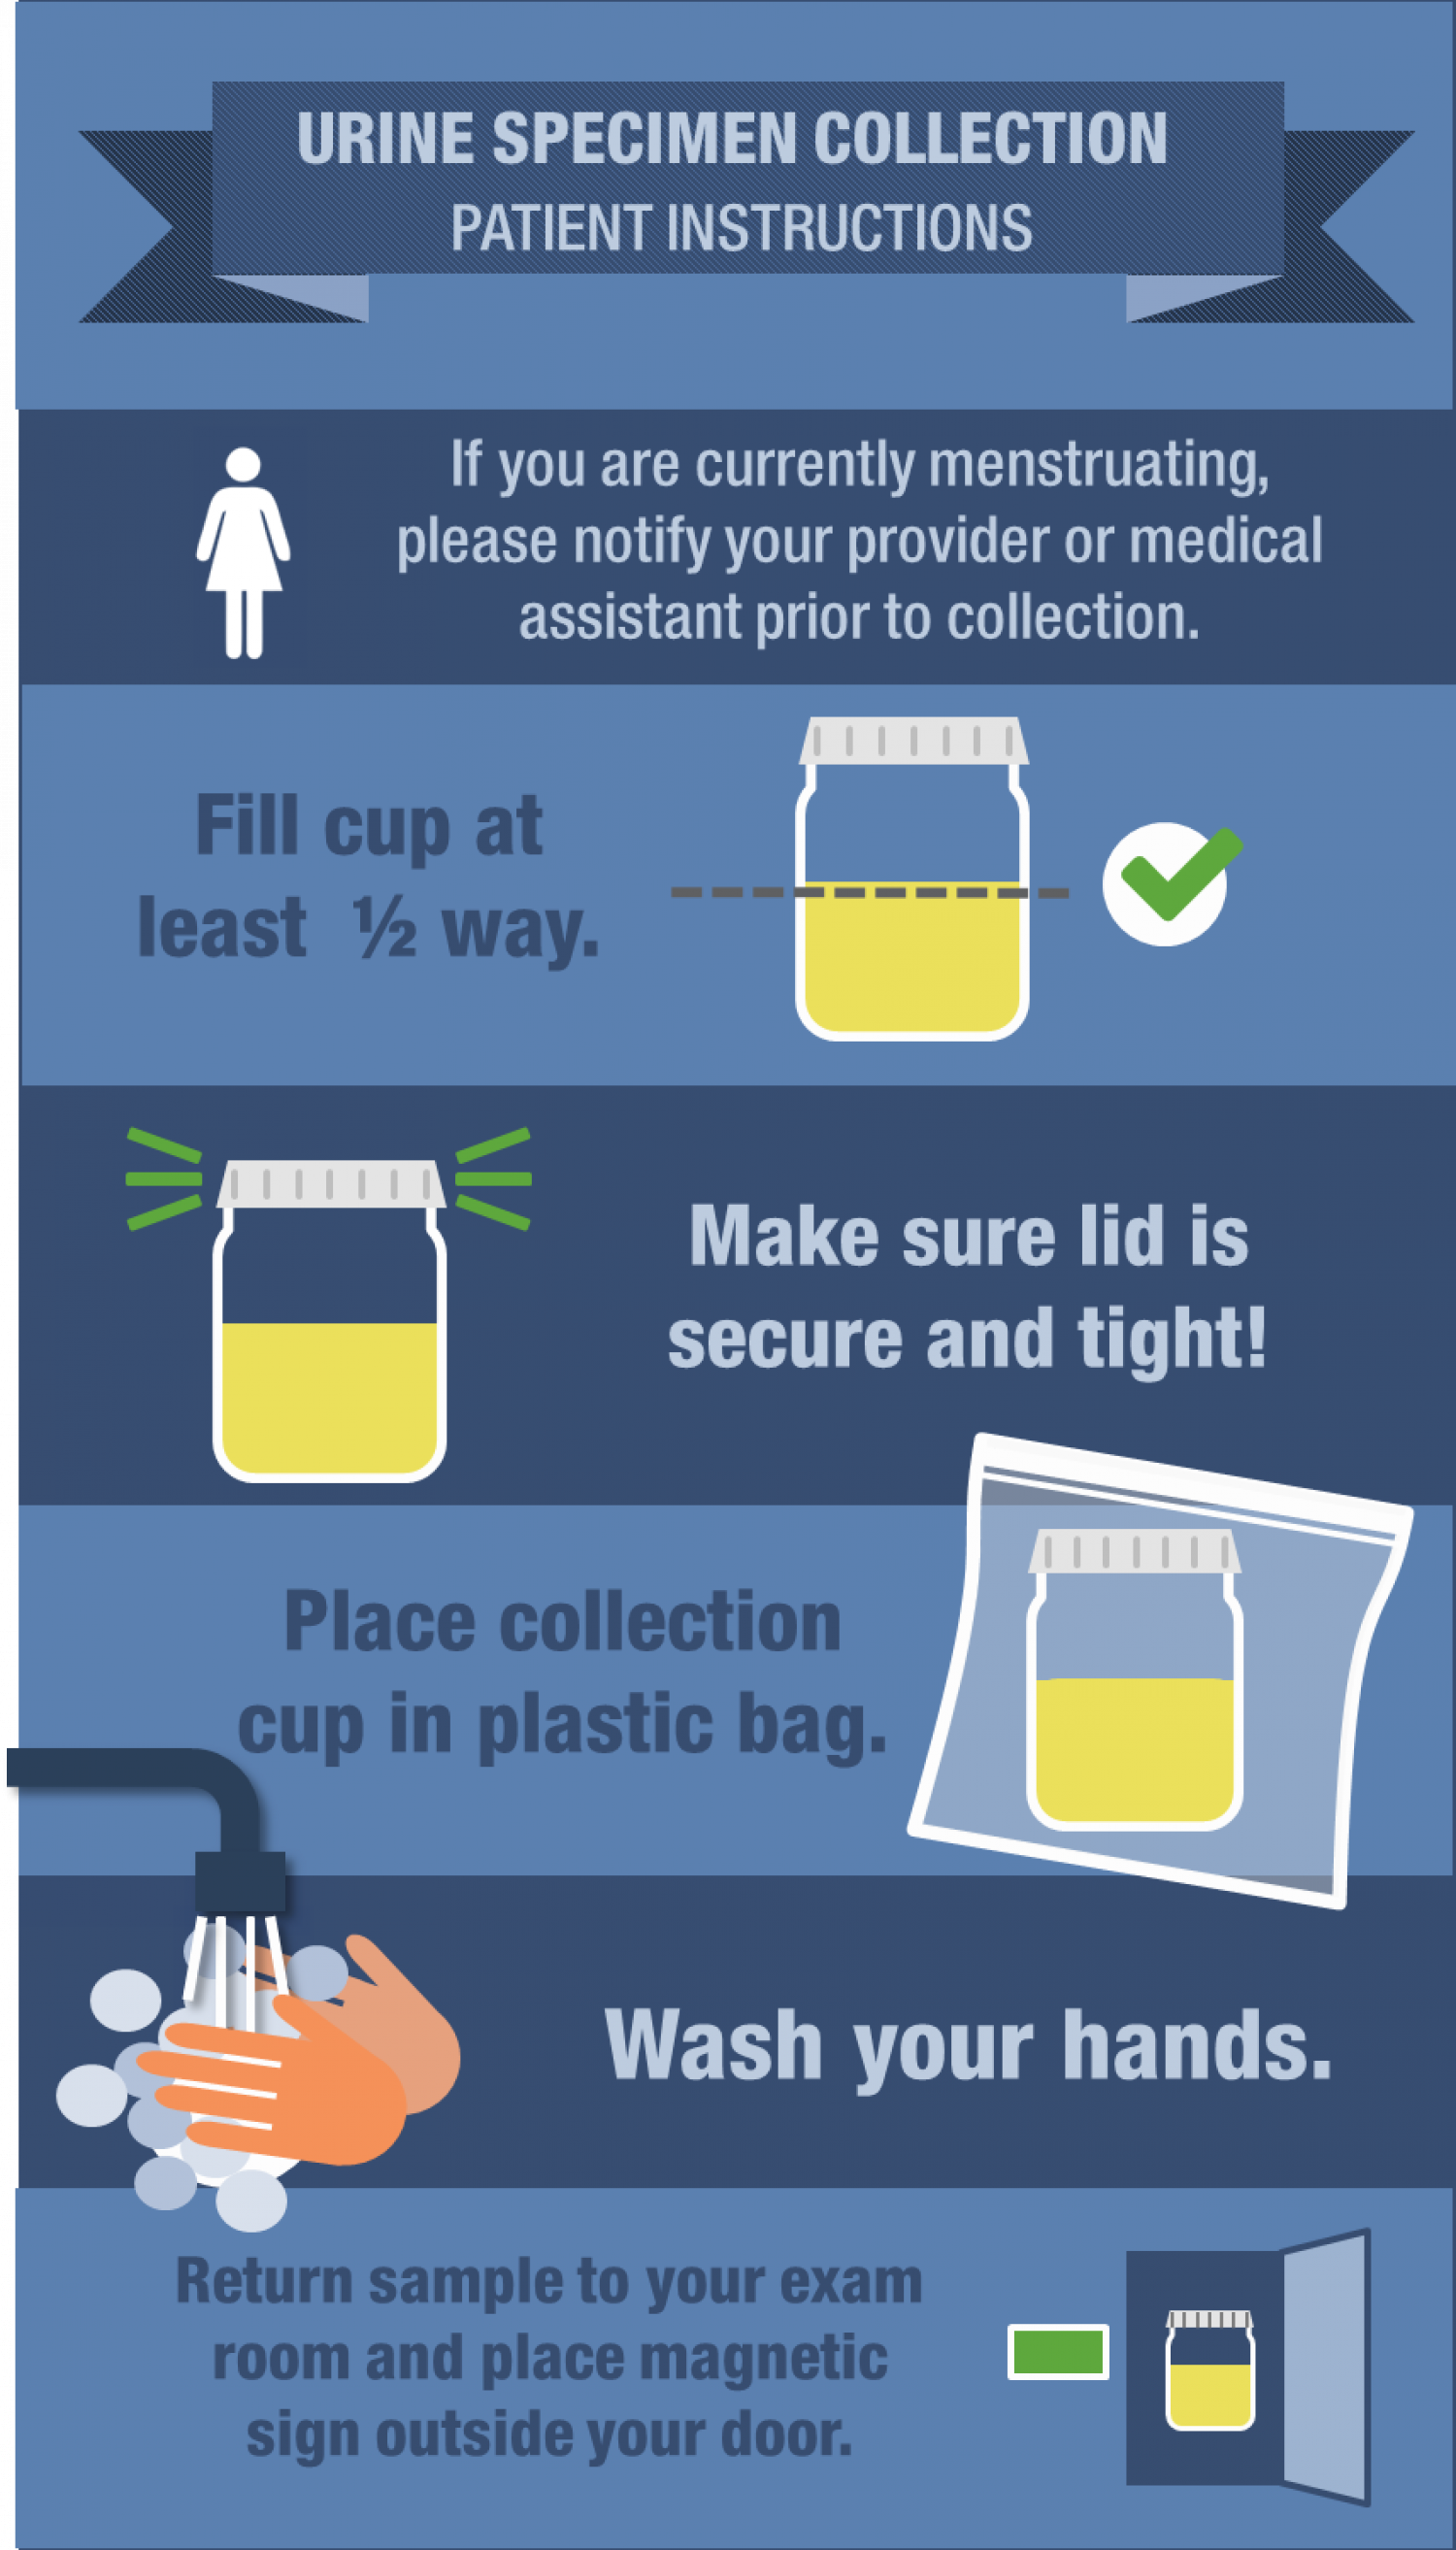 UC - Patient Instructions Infographic